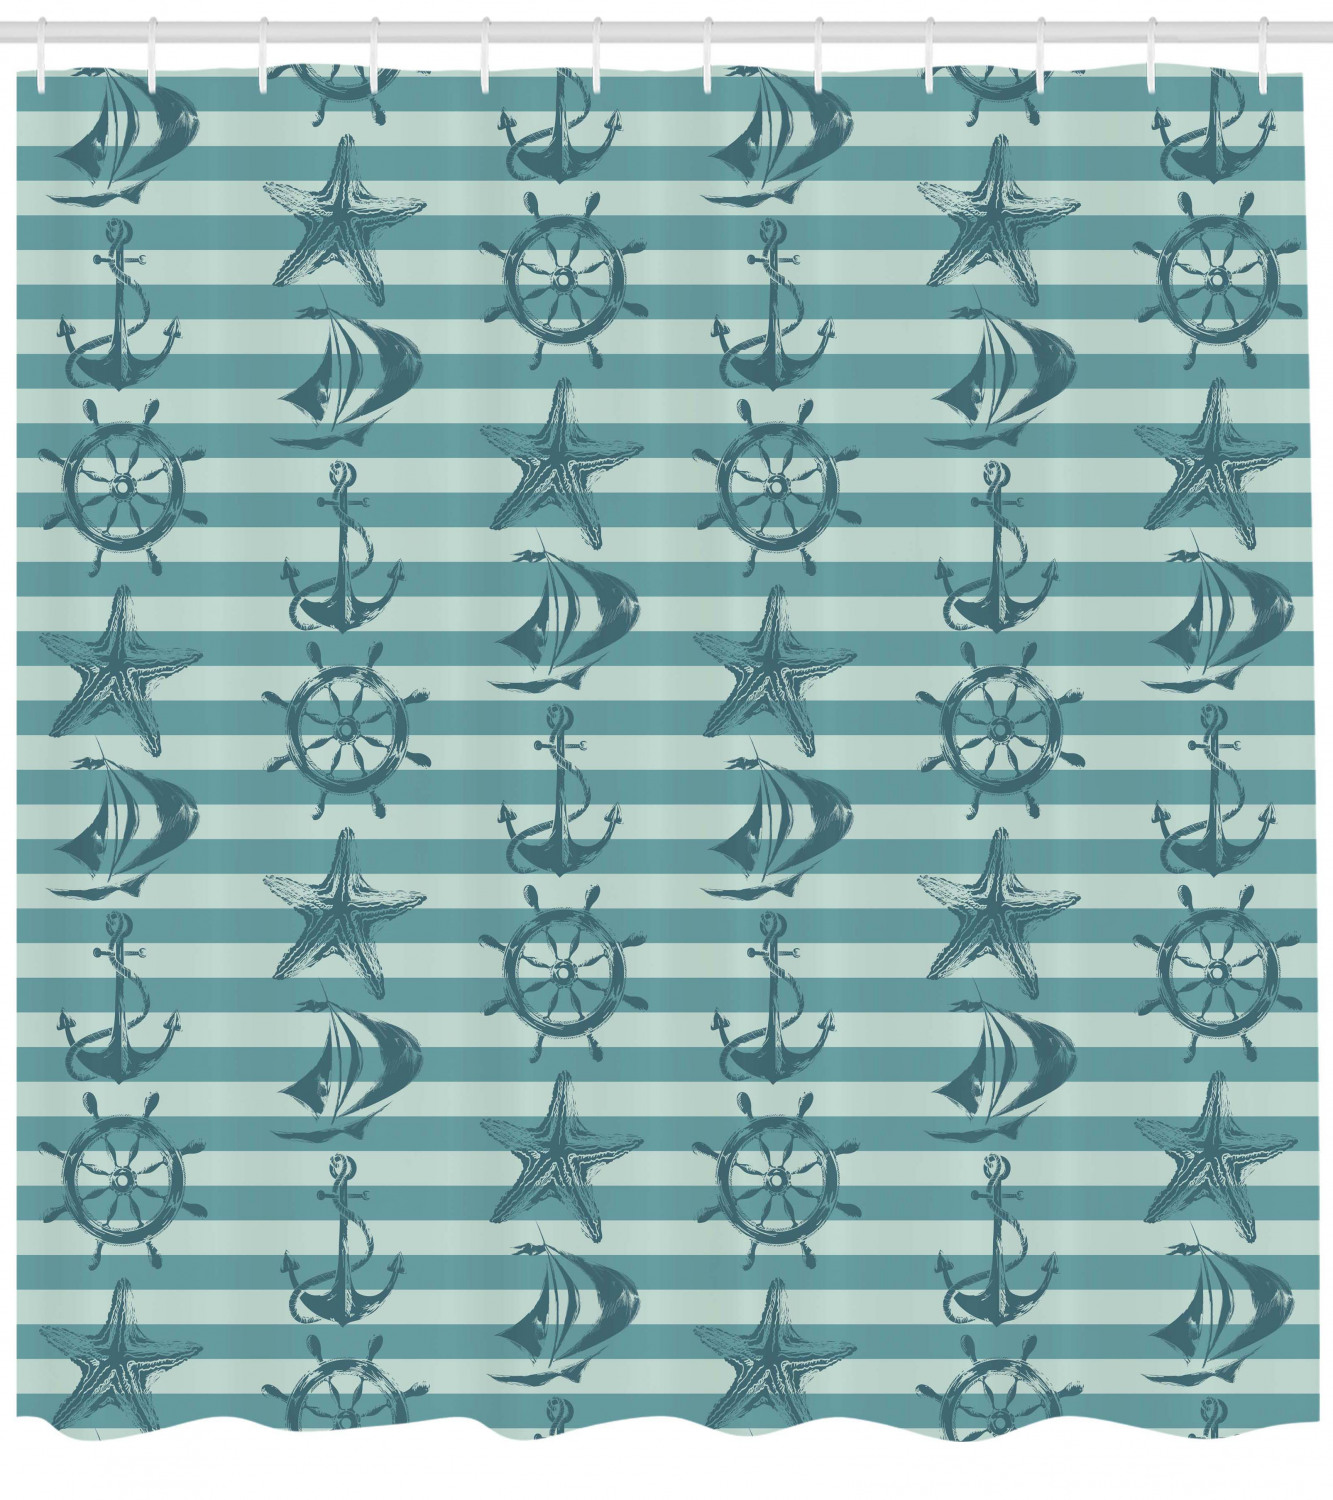 Ships Wheel Shower Curtain Retro Marine Pattern With Ship Wheel Anchor And Starfish On Striped Background Fabric Bathroom Set With Hooks Teal